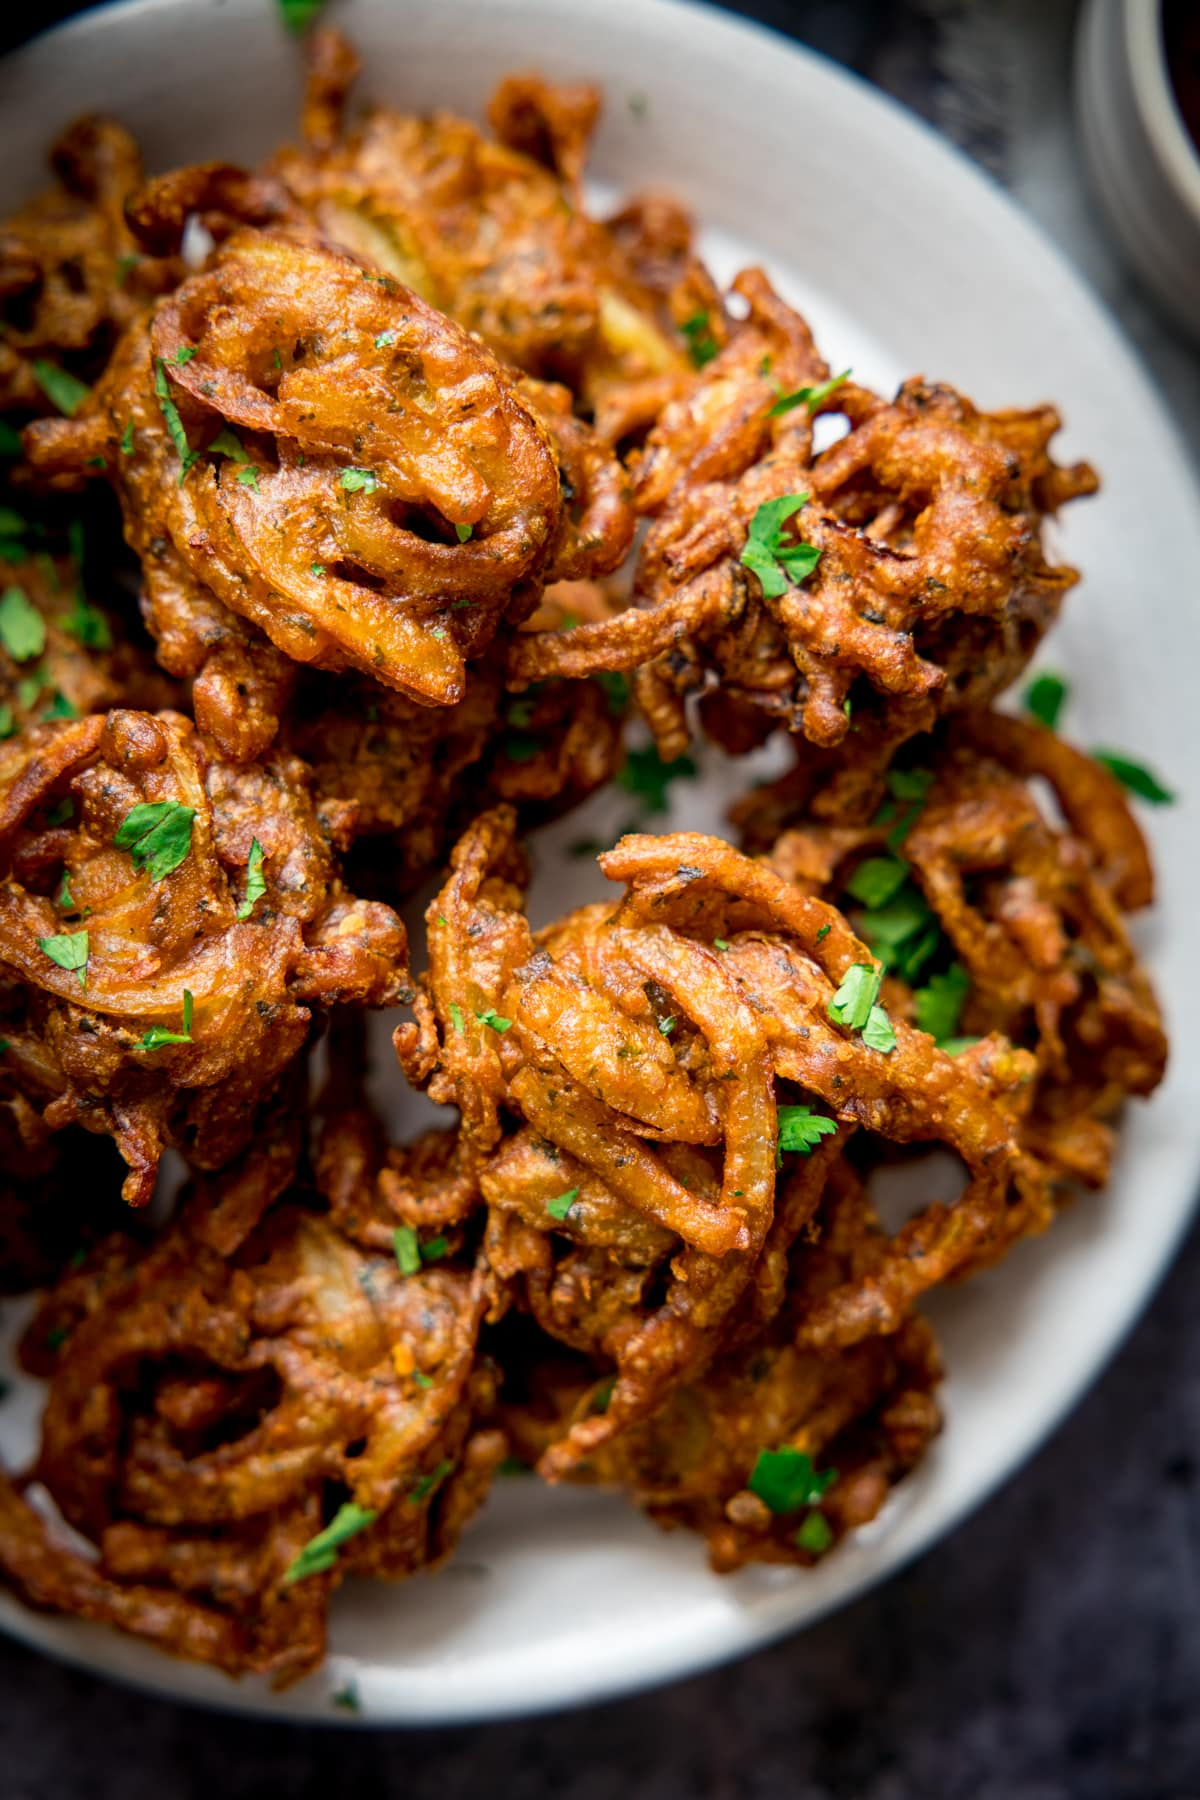 Overhead of Onion bhajis on a white plate.